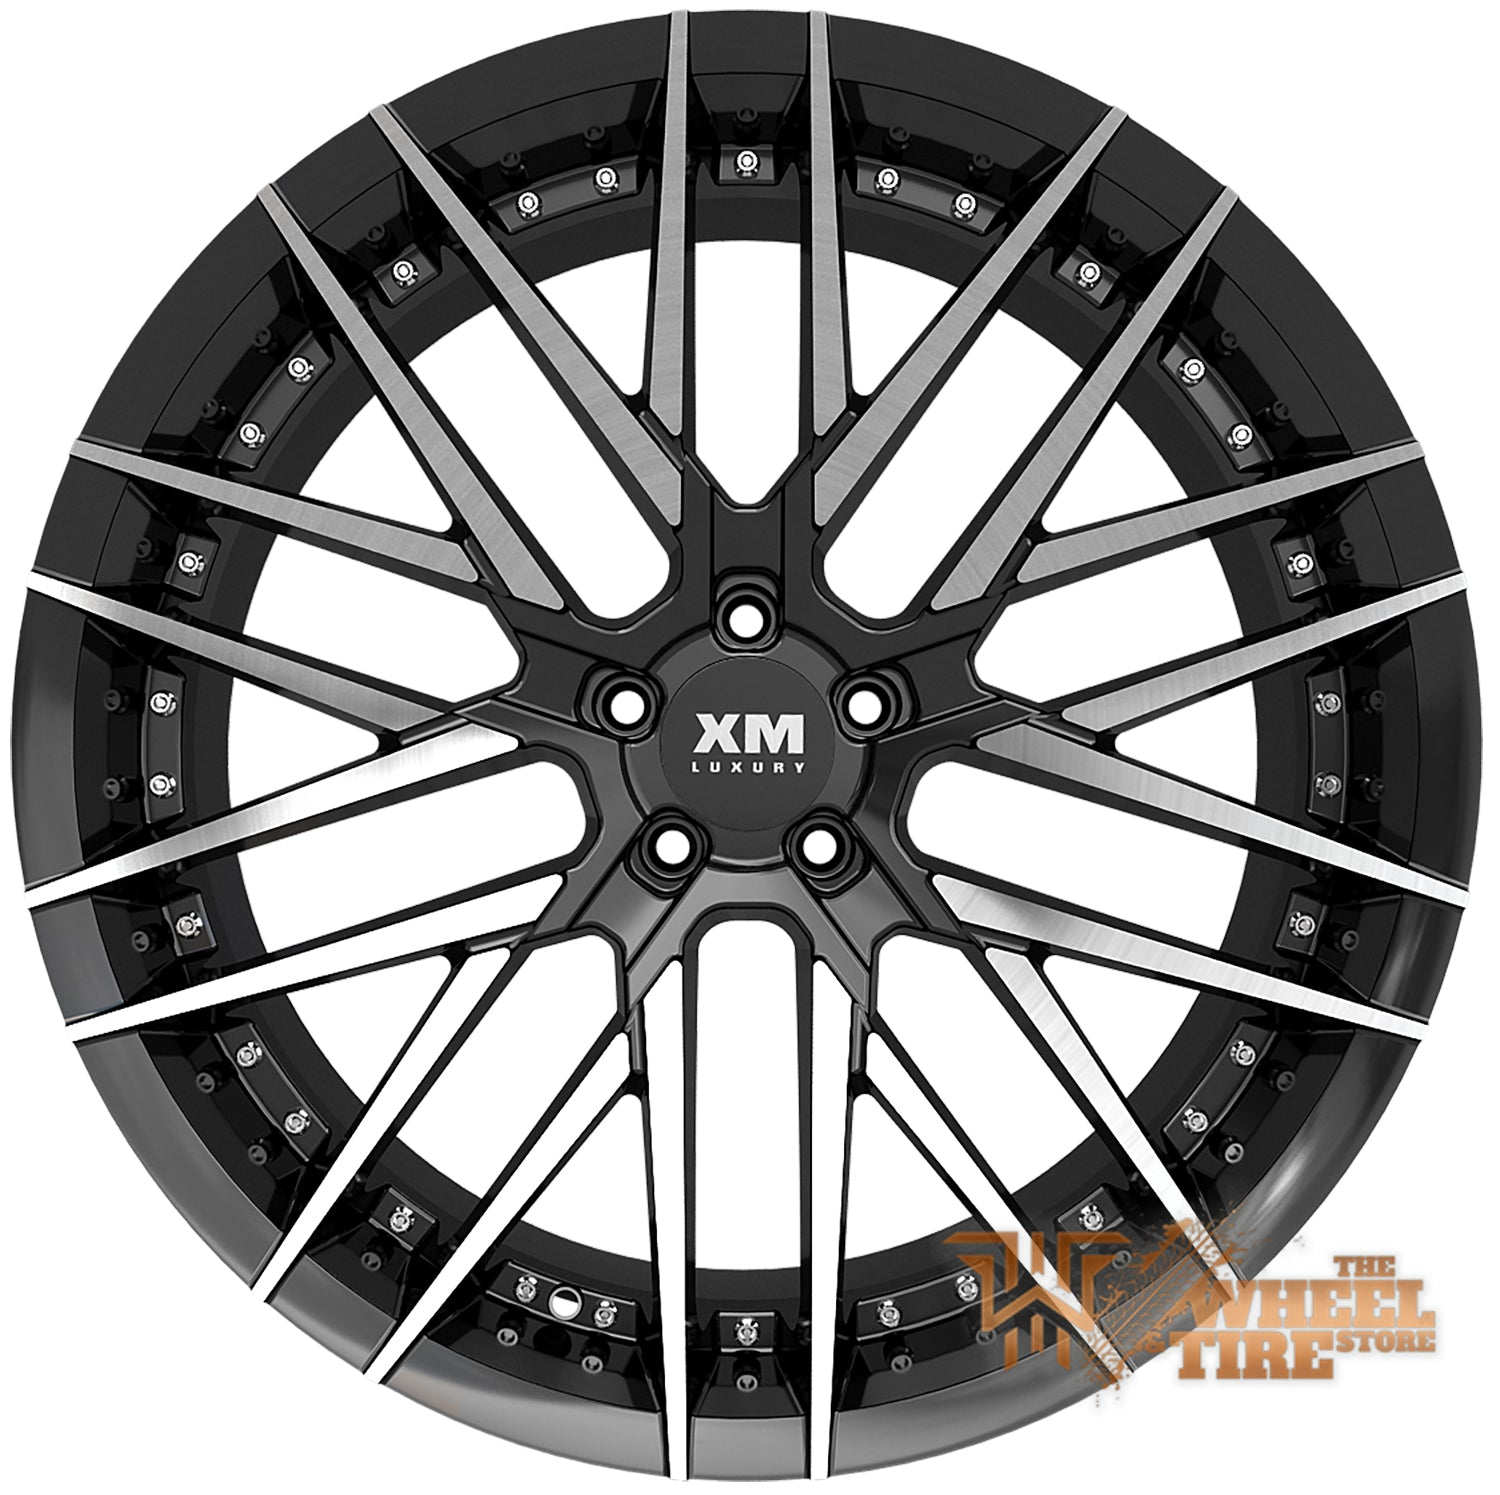 XM LUXURY XM-203 Wheel in Black Machined Face